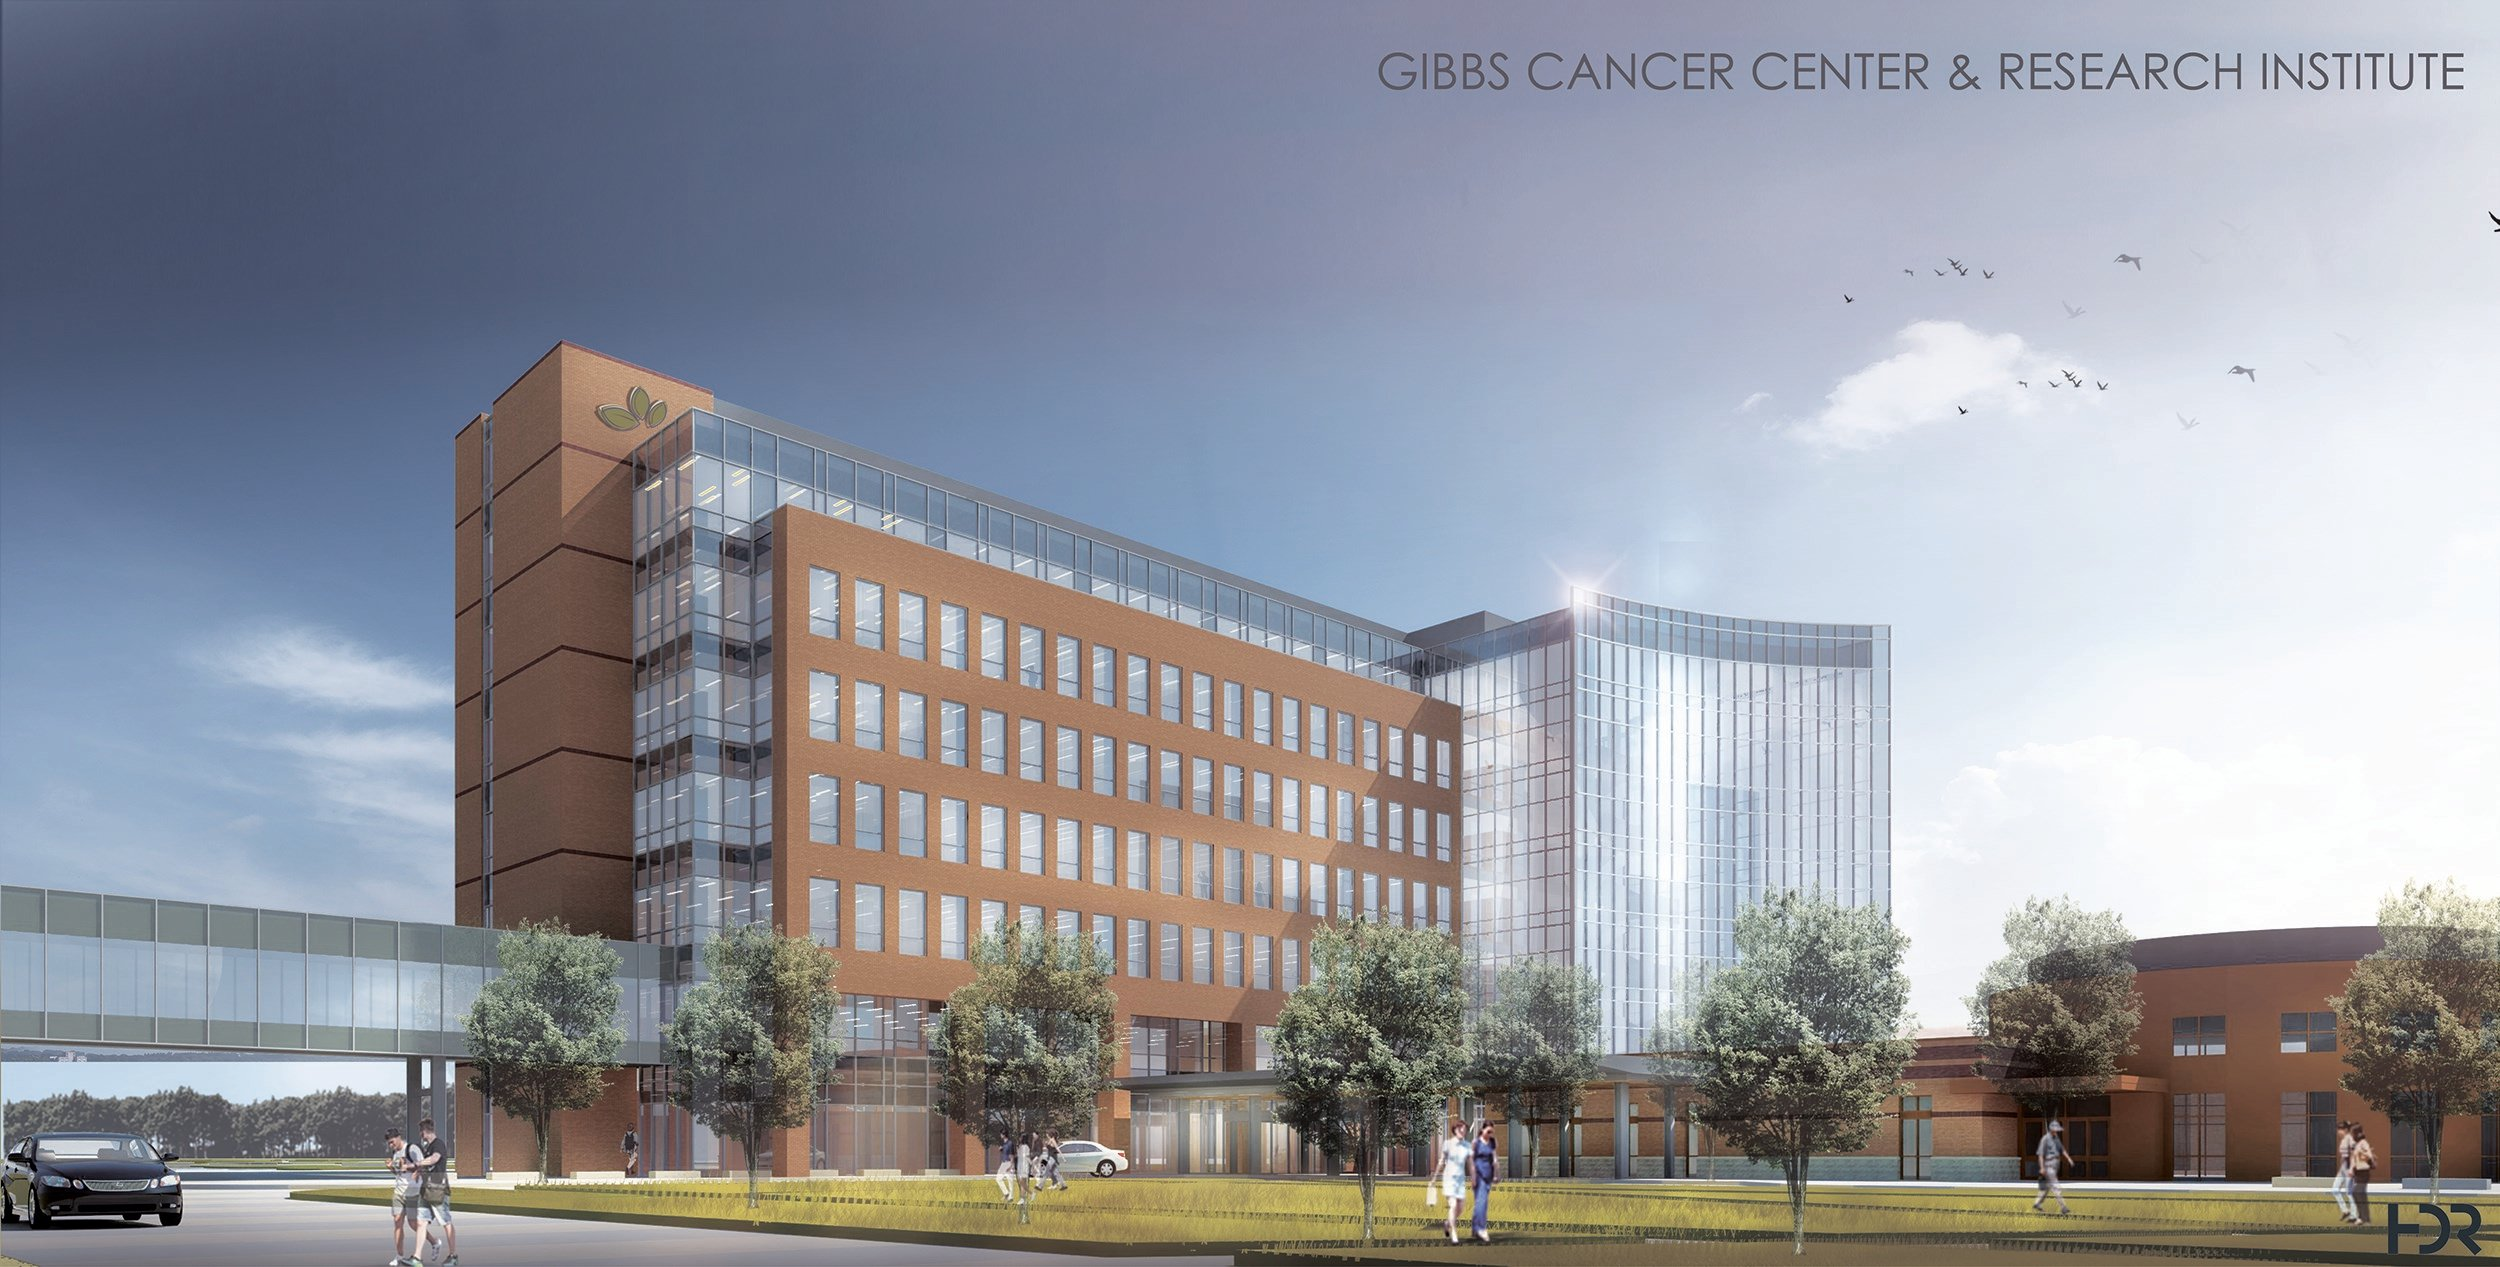 Rendering of new Gibbs at Pelham center. (Source: SRHS)